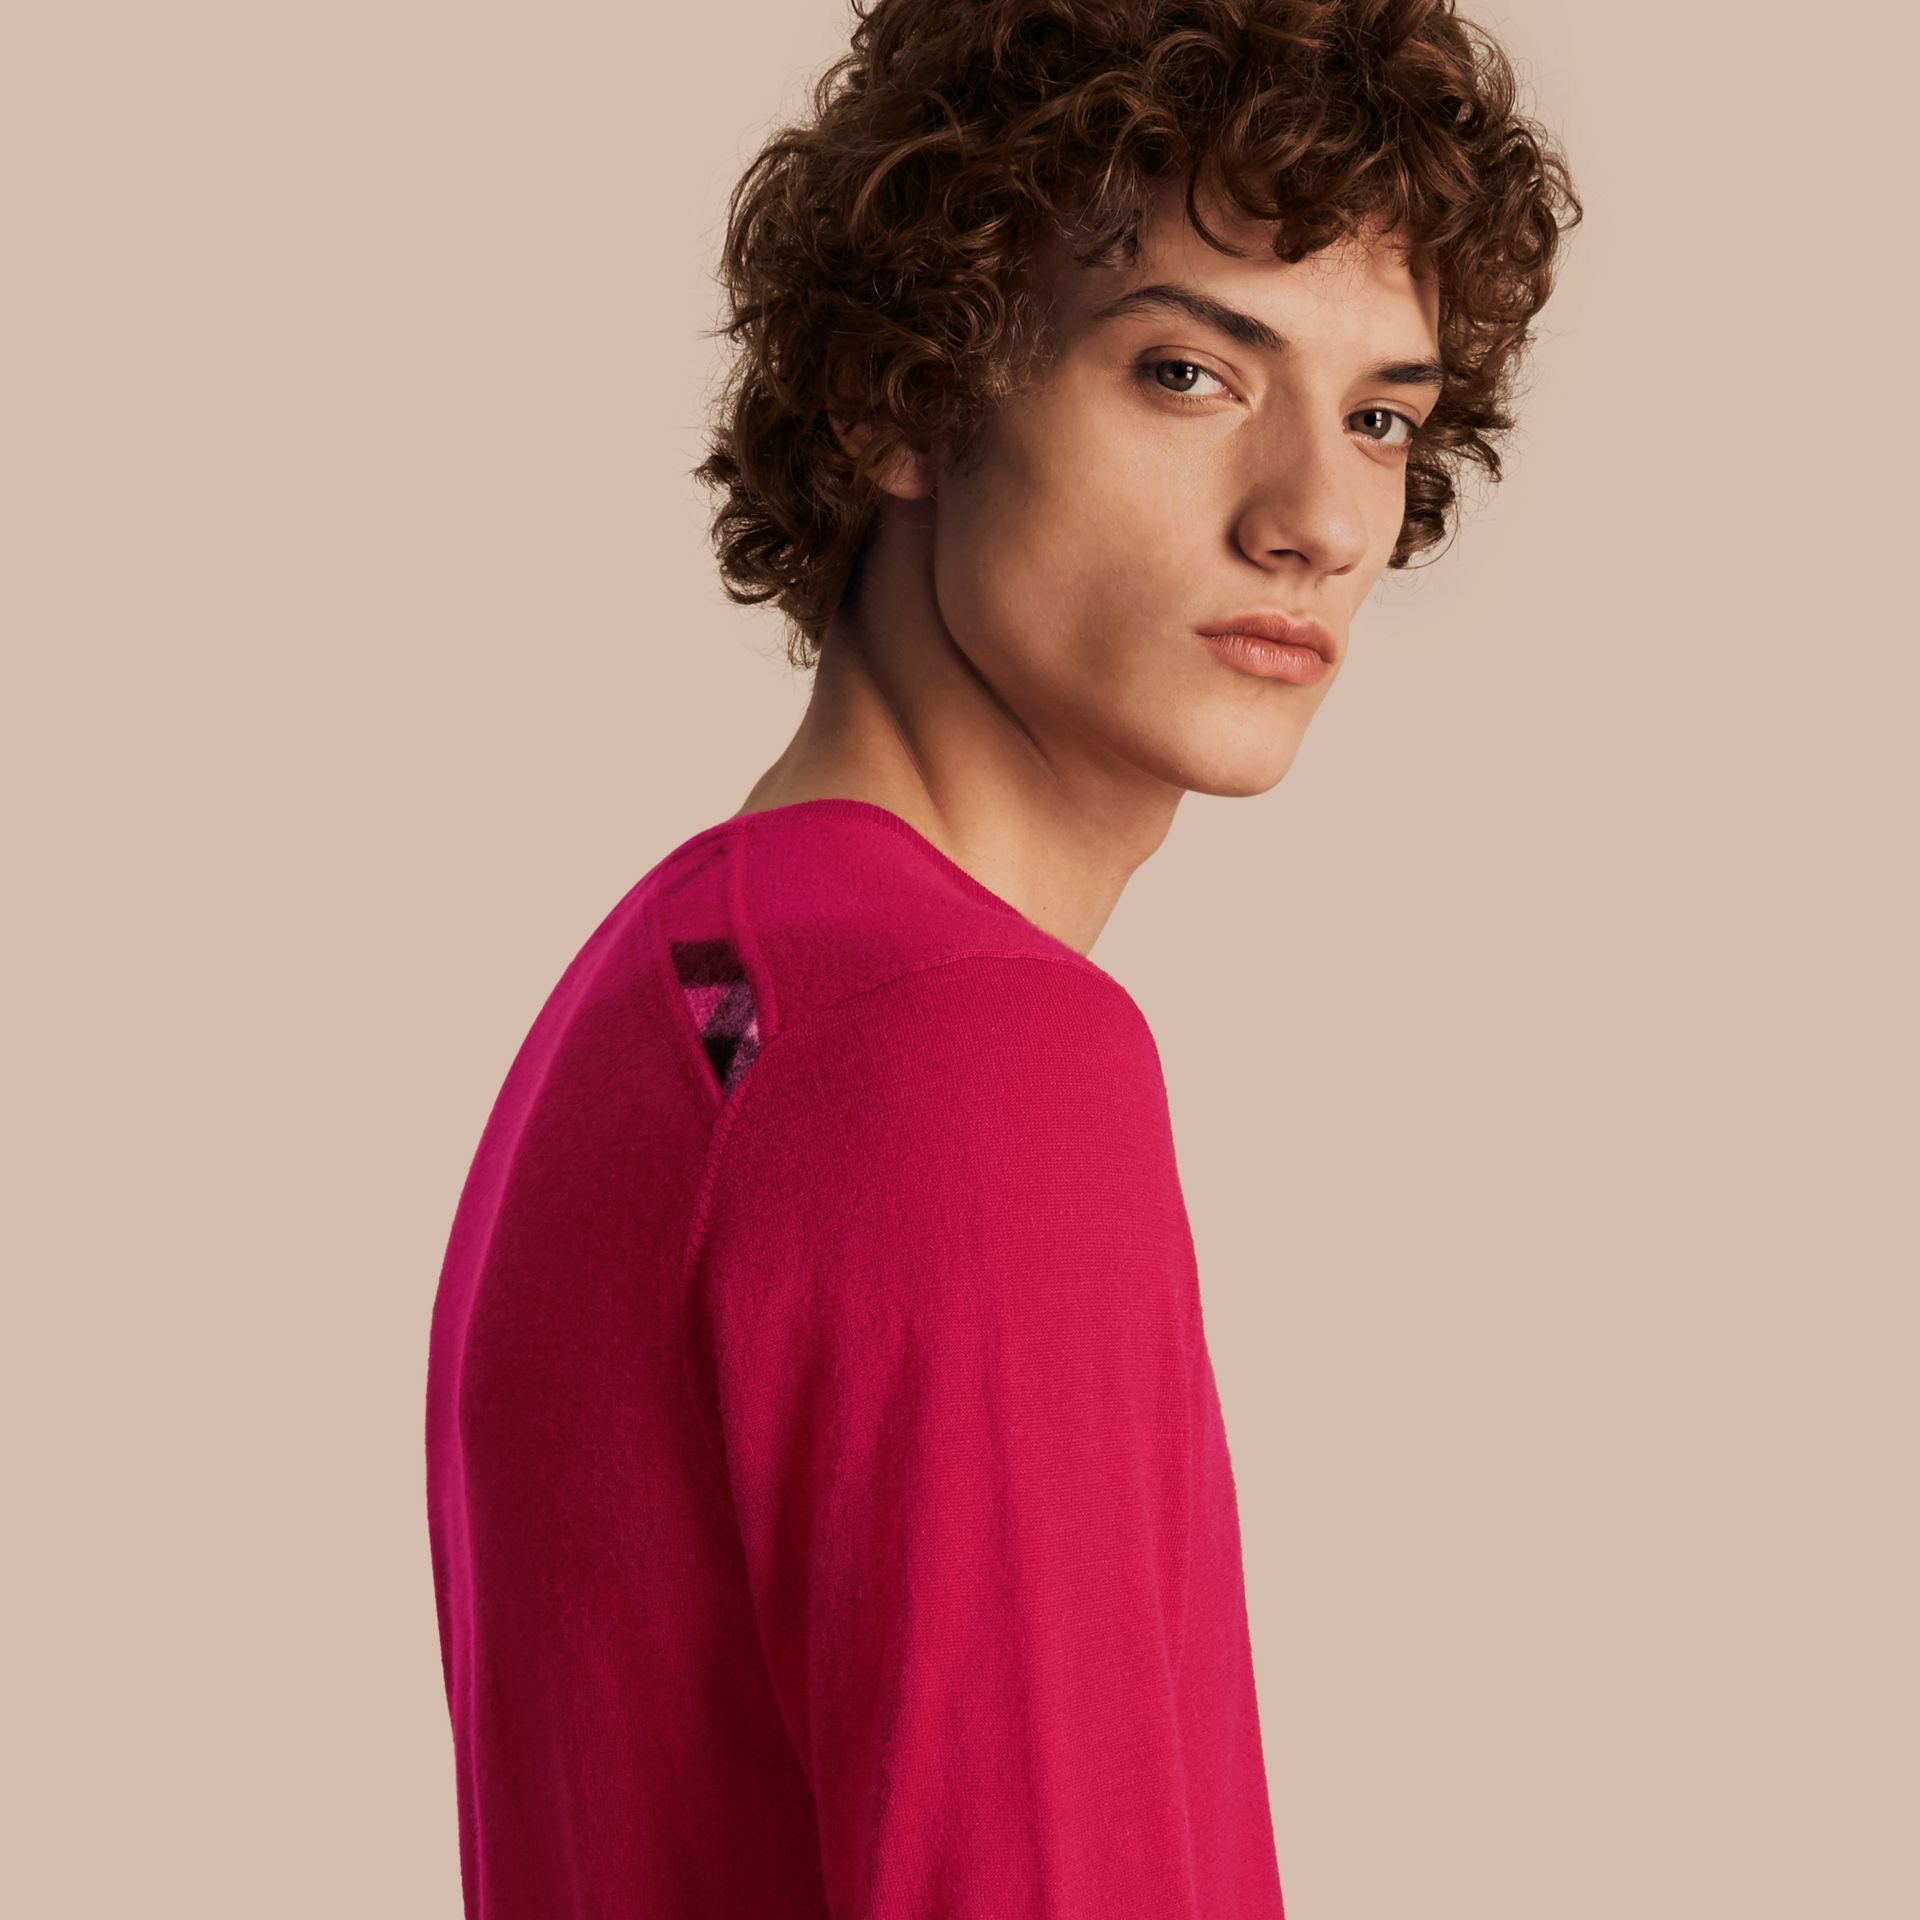 Bright pink Lightweight Crew Neck Cashmere Sweater with Check Trim Bright Pink - gallery image 1